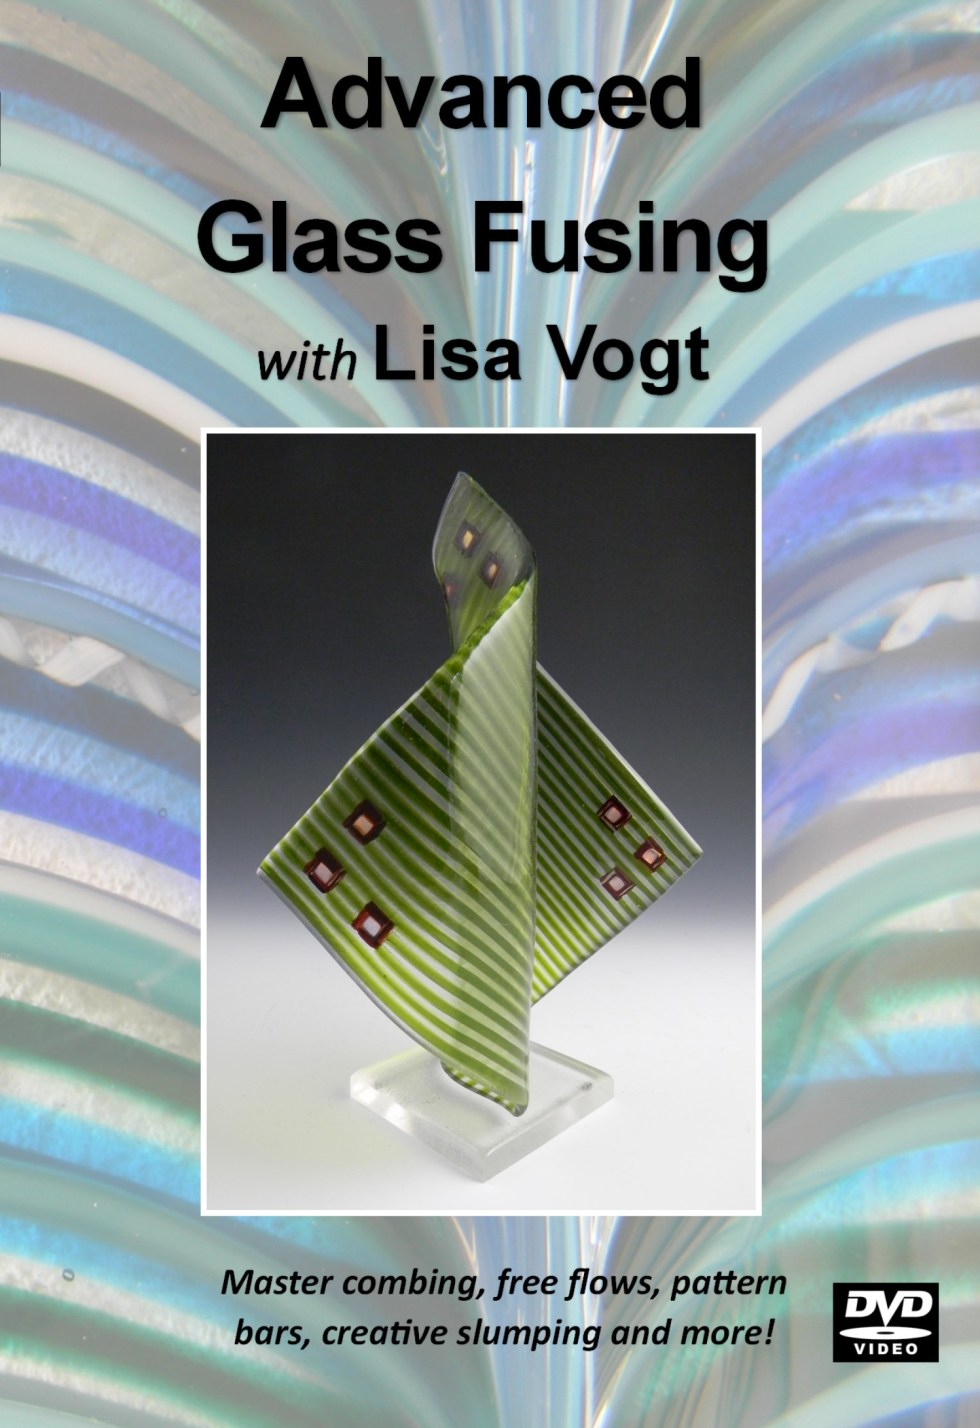 Advanced Glass Fusing with Lisa Vogt Video DVD Front Cover